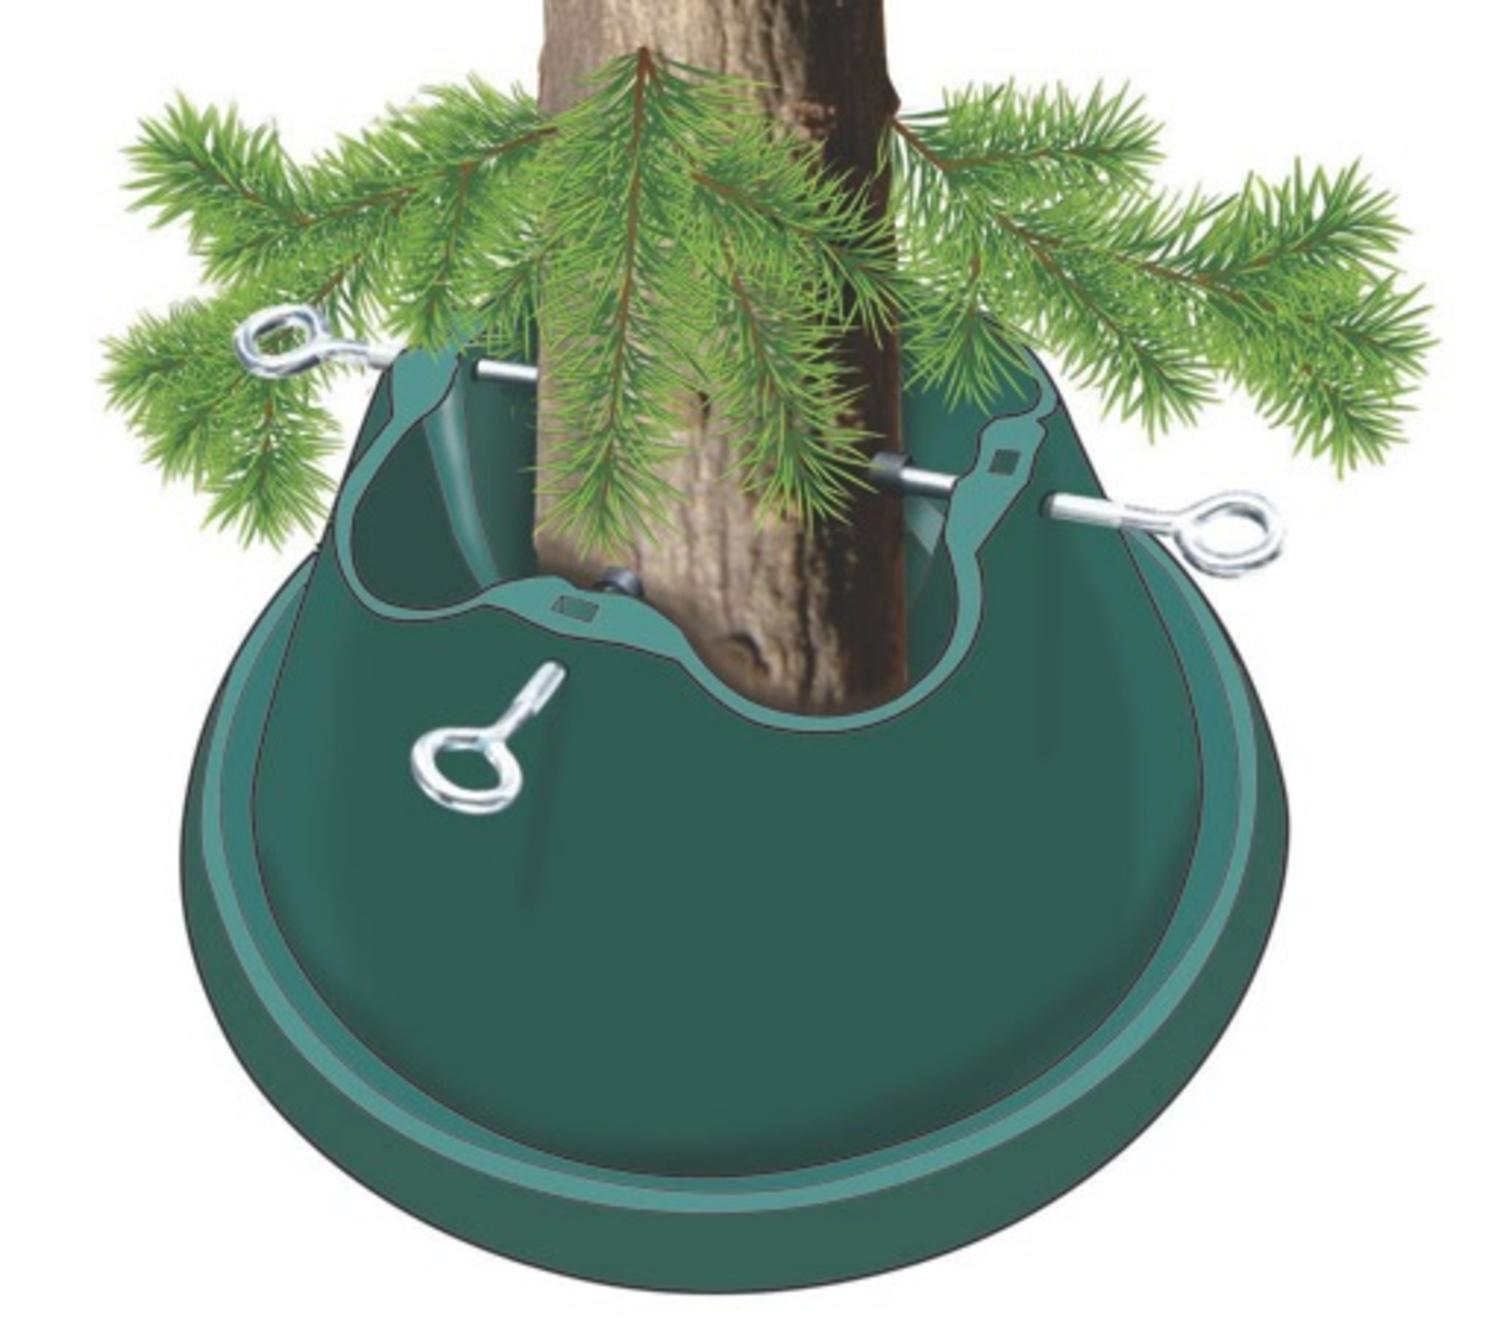 Ordinaire Heavy Duty Green Easy Watering Christmas Tree Stand   For Live Trees Up To  10u0027